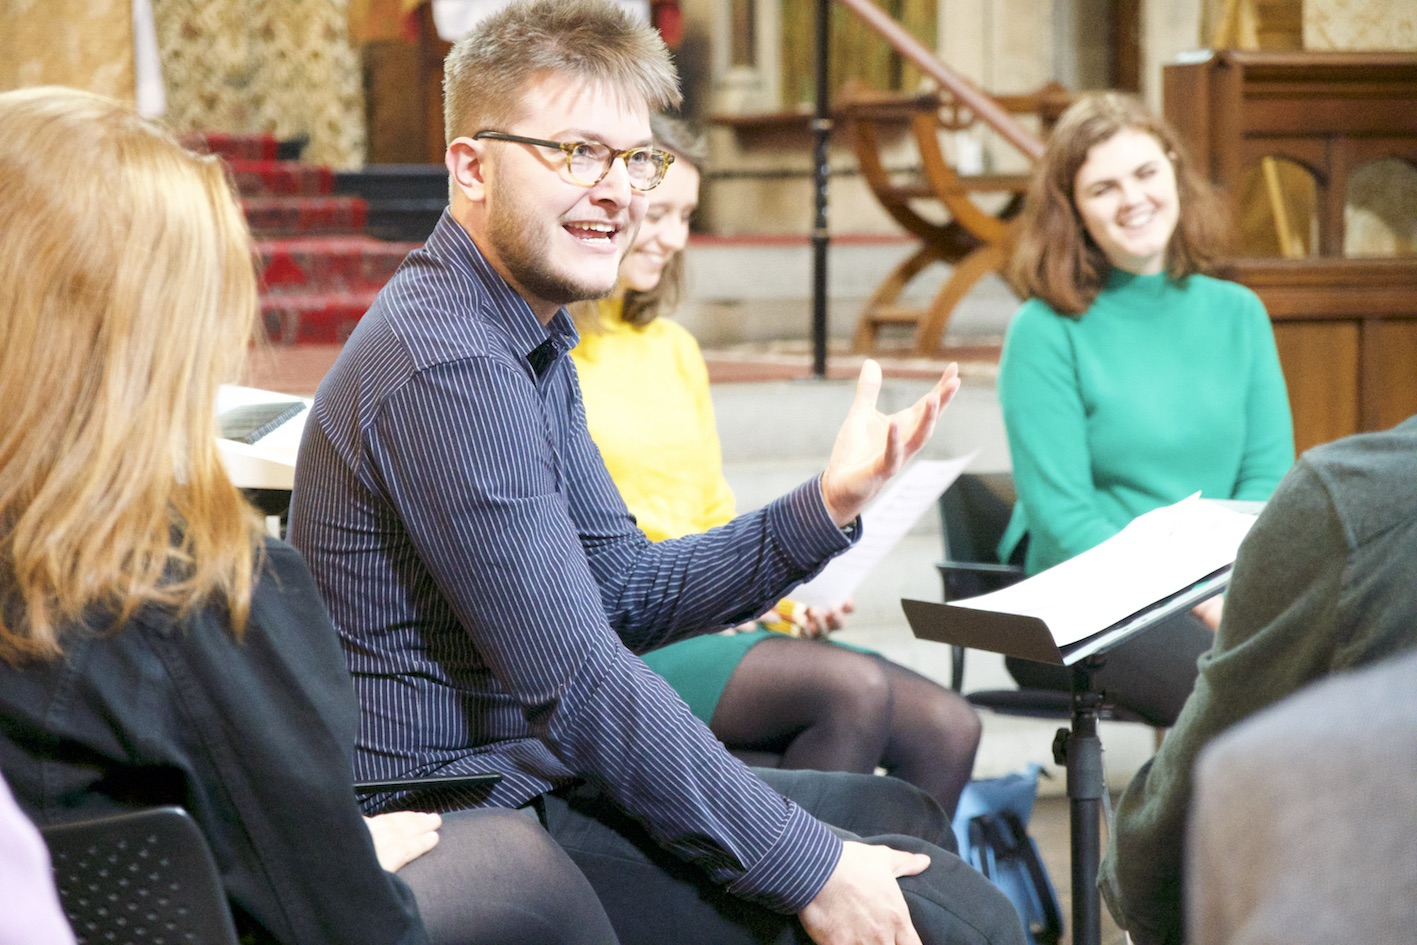 Educational innovators - In partnership with SignaturORA Singers recently launched a mentoring initiative for Young Composers, beginning with the 2019 Young Composer Competition. This programme selected 10 students from non-fee paying schools to receive compositional mentoring and to write a new composition for the ORA Singers, which was performed at King's College London in July 2019 and judged by Stephen Fry, John Rutter CBE, Katie Tearle MBE and Susanna Eastburn MBE. This scheme also involved a compositional workshop in May 2019, led by Rory Johnston and a quartet of ORA's prized singers. Young composers had their chance to hear their pieces trialed in a public workshop.As part of this mentoring initiative, the vocal ensemble also created a new digital website designed to lead an aspiring choral composer through the full compositional process. Composer Create launched in December 2018 and includes video testimonies from many of ORA's esteemed commissioned composers, as well as industry experts.